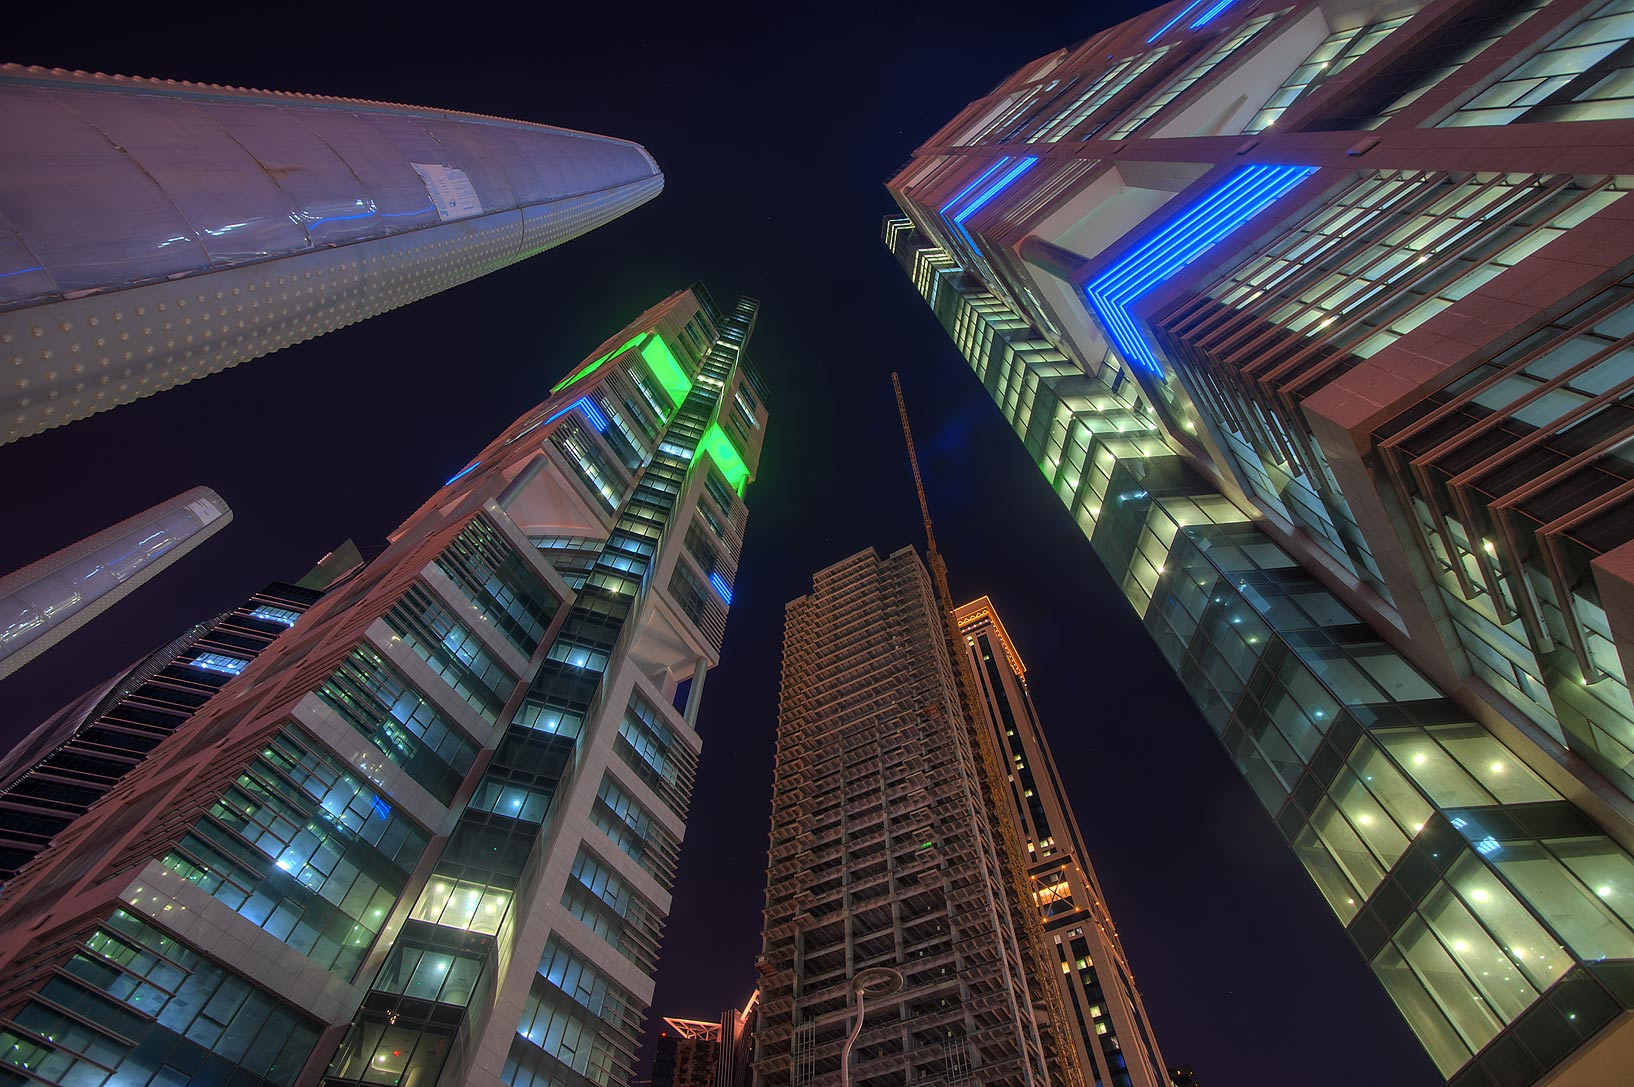 Towers at Conference Center St. in West Bay, looking up. Doha, Qatar